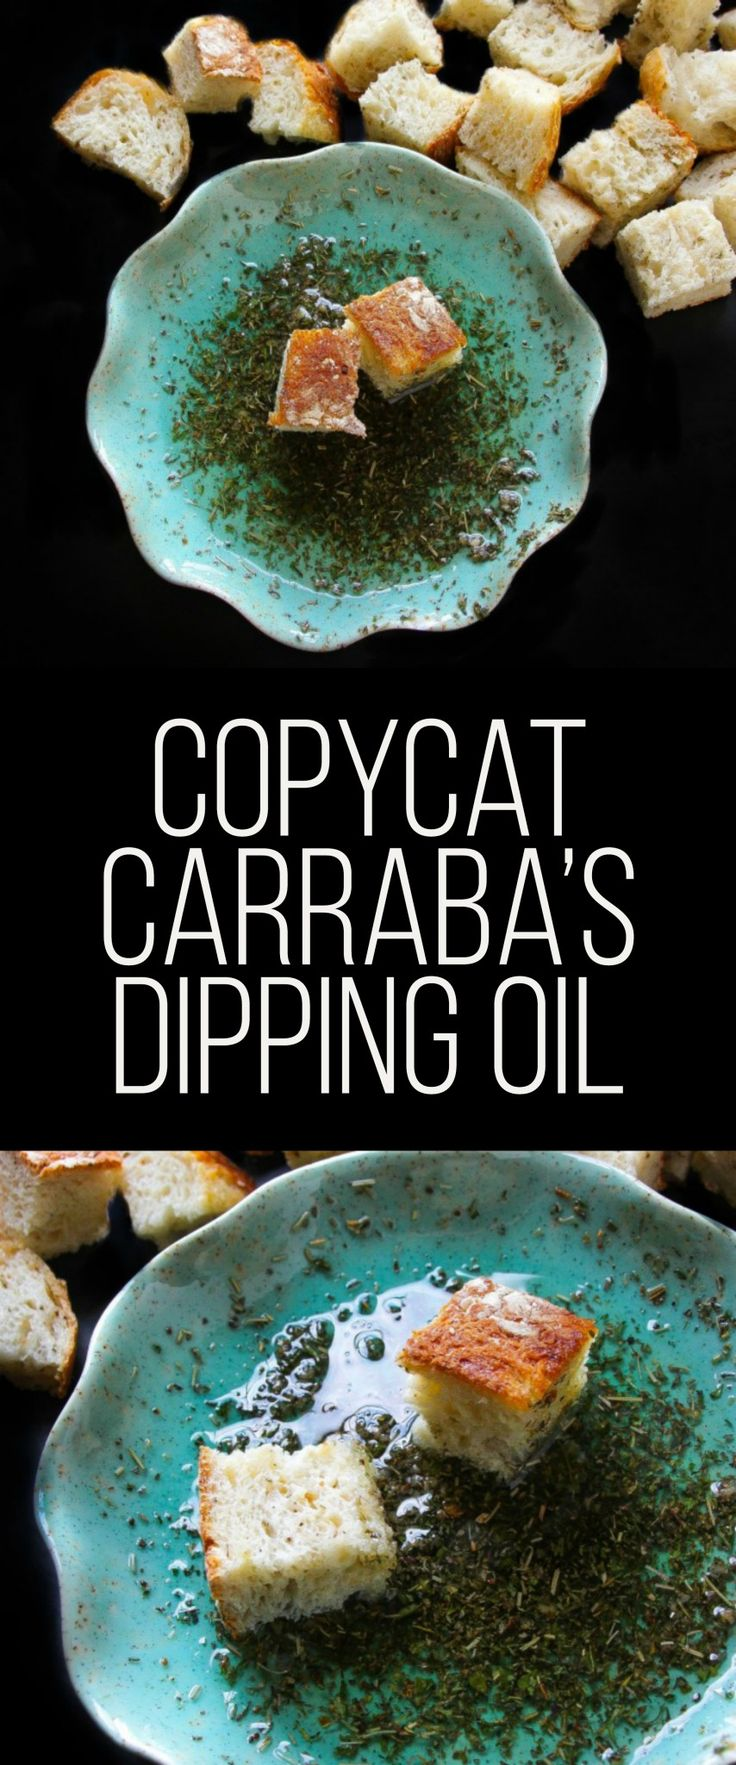 Copycat Carrrabba's Bread Dipping Oil